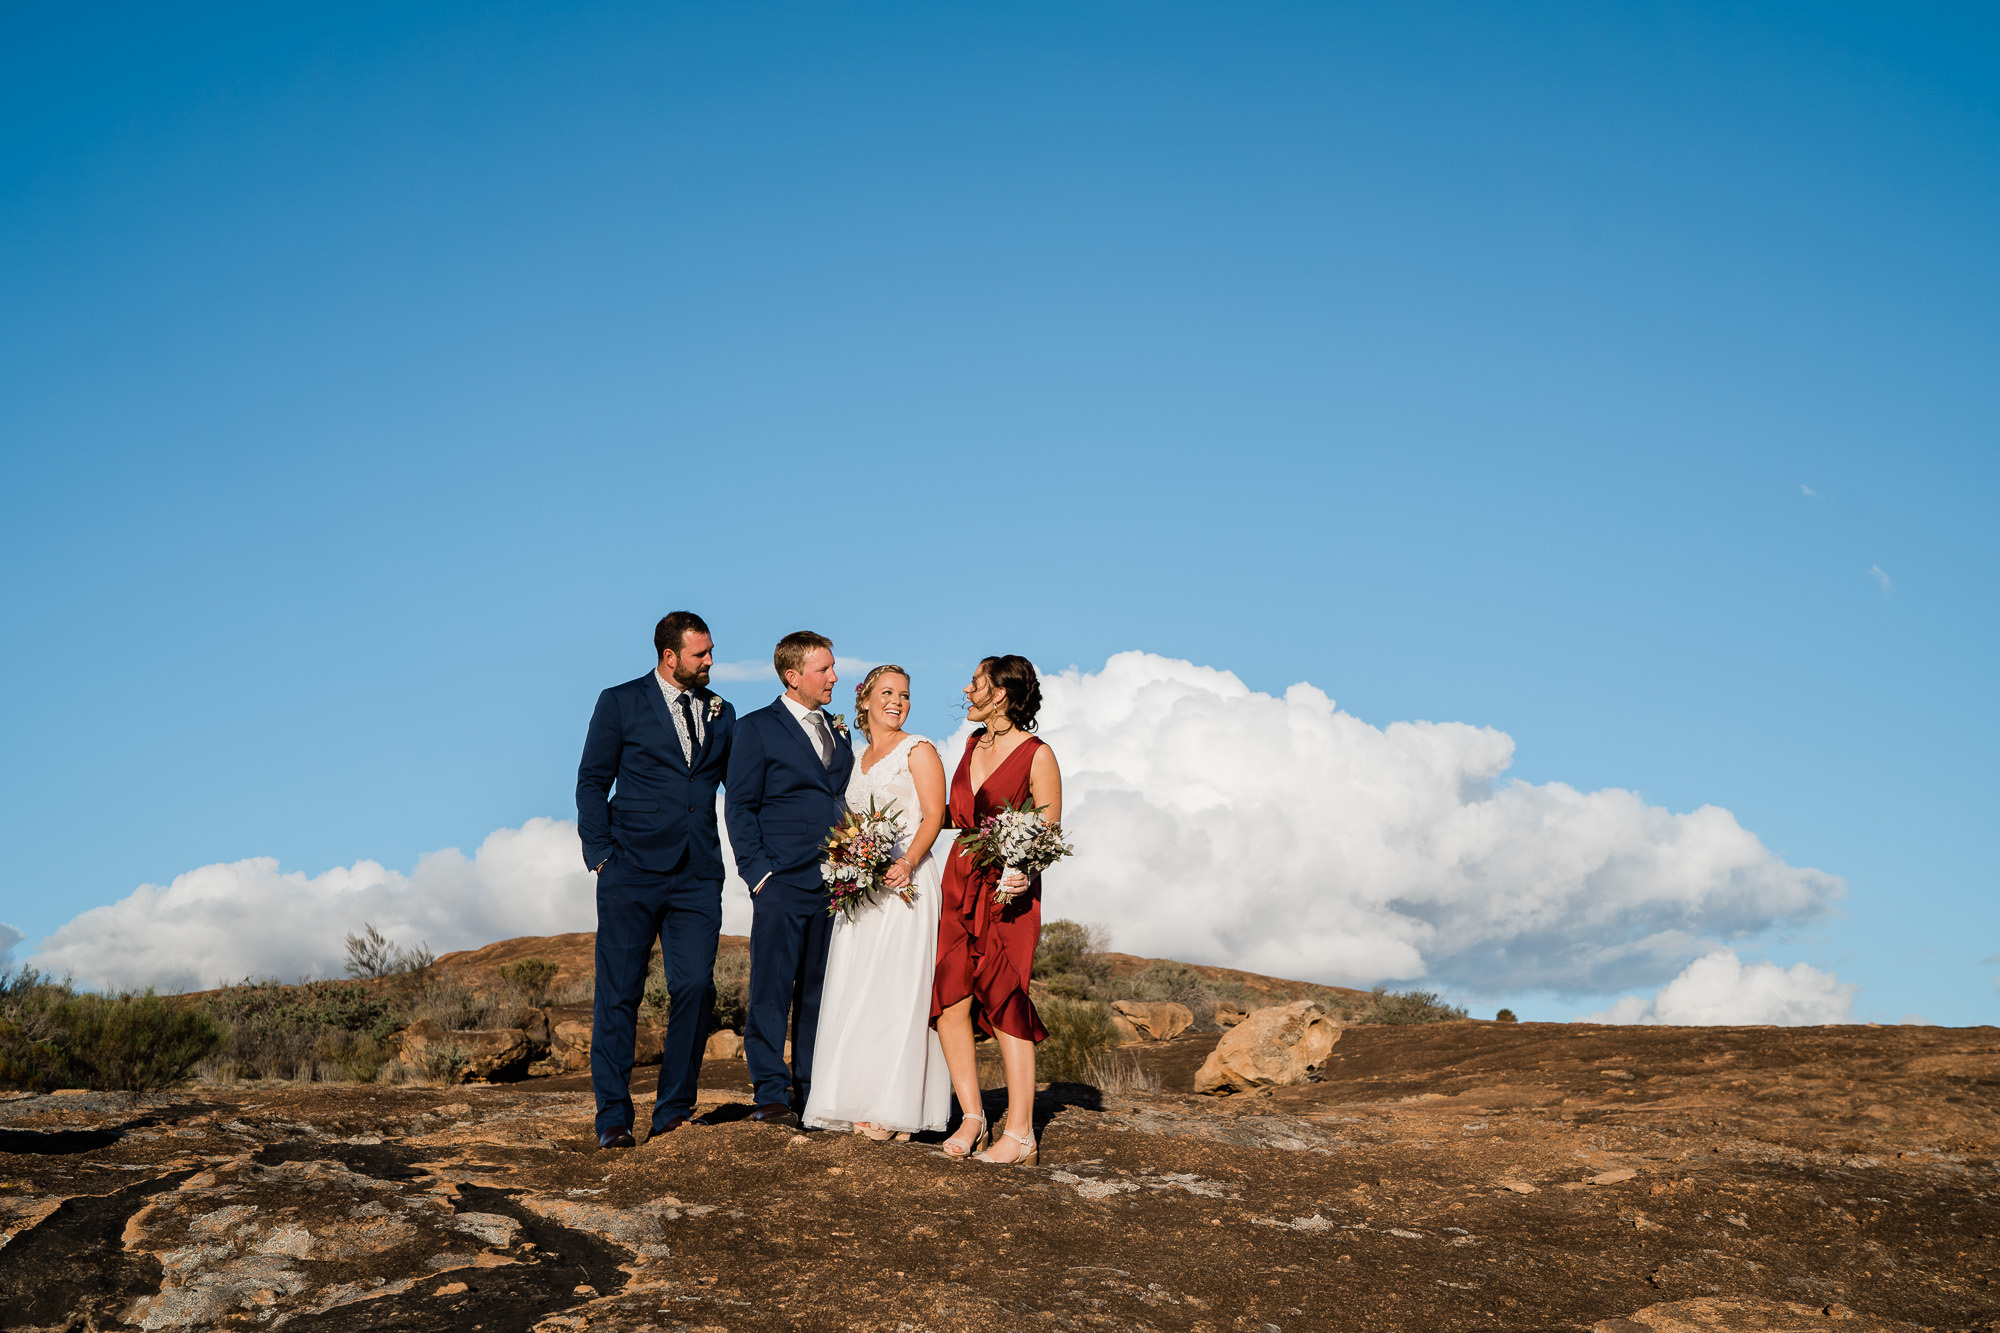 Perth Wedding Bridal Party